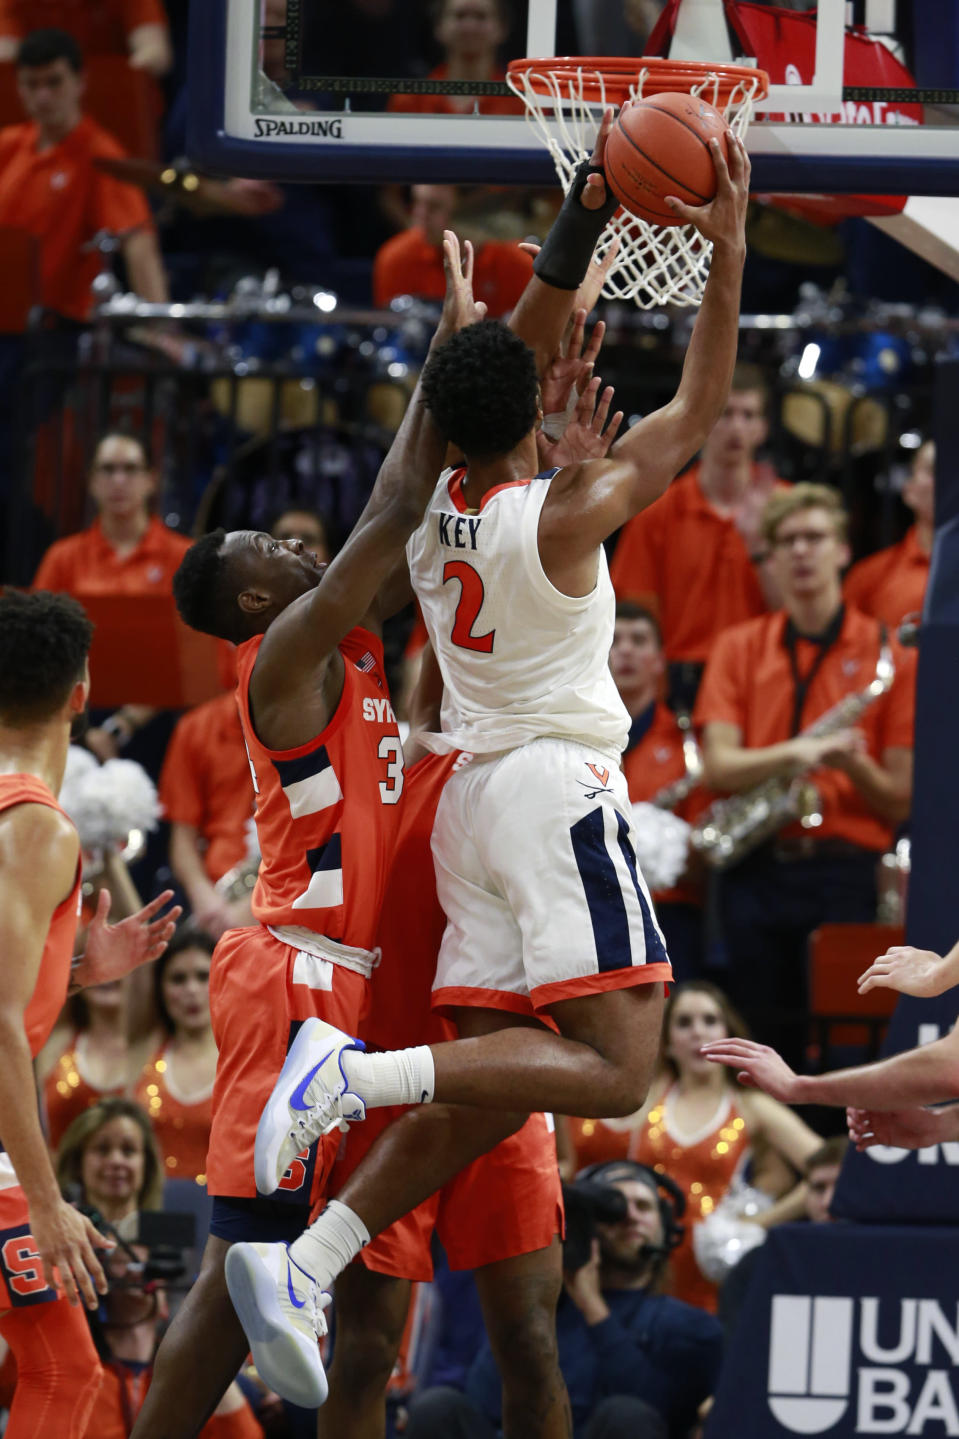 Virginia guard Braxton Key (2) puts up a shot in front of Syracuse forward Bourama Sidibe (34) during the first half of an NCAA college basketball game in Charlottesville, Va., Saturday, Jan. 11, 2020. (AP Photo/Steve Helber)